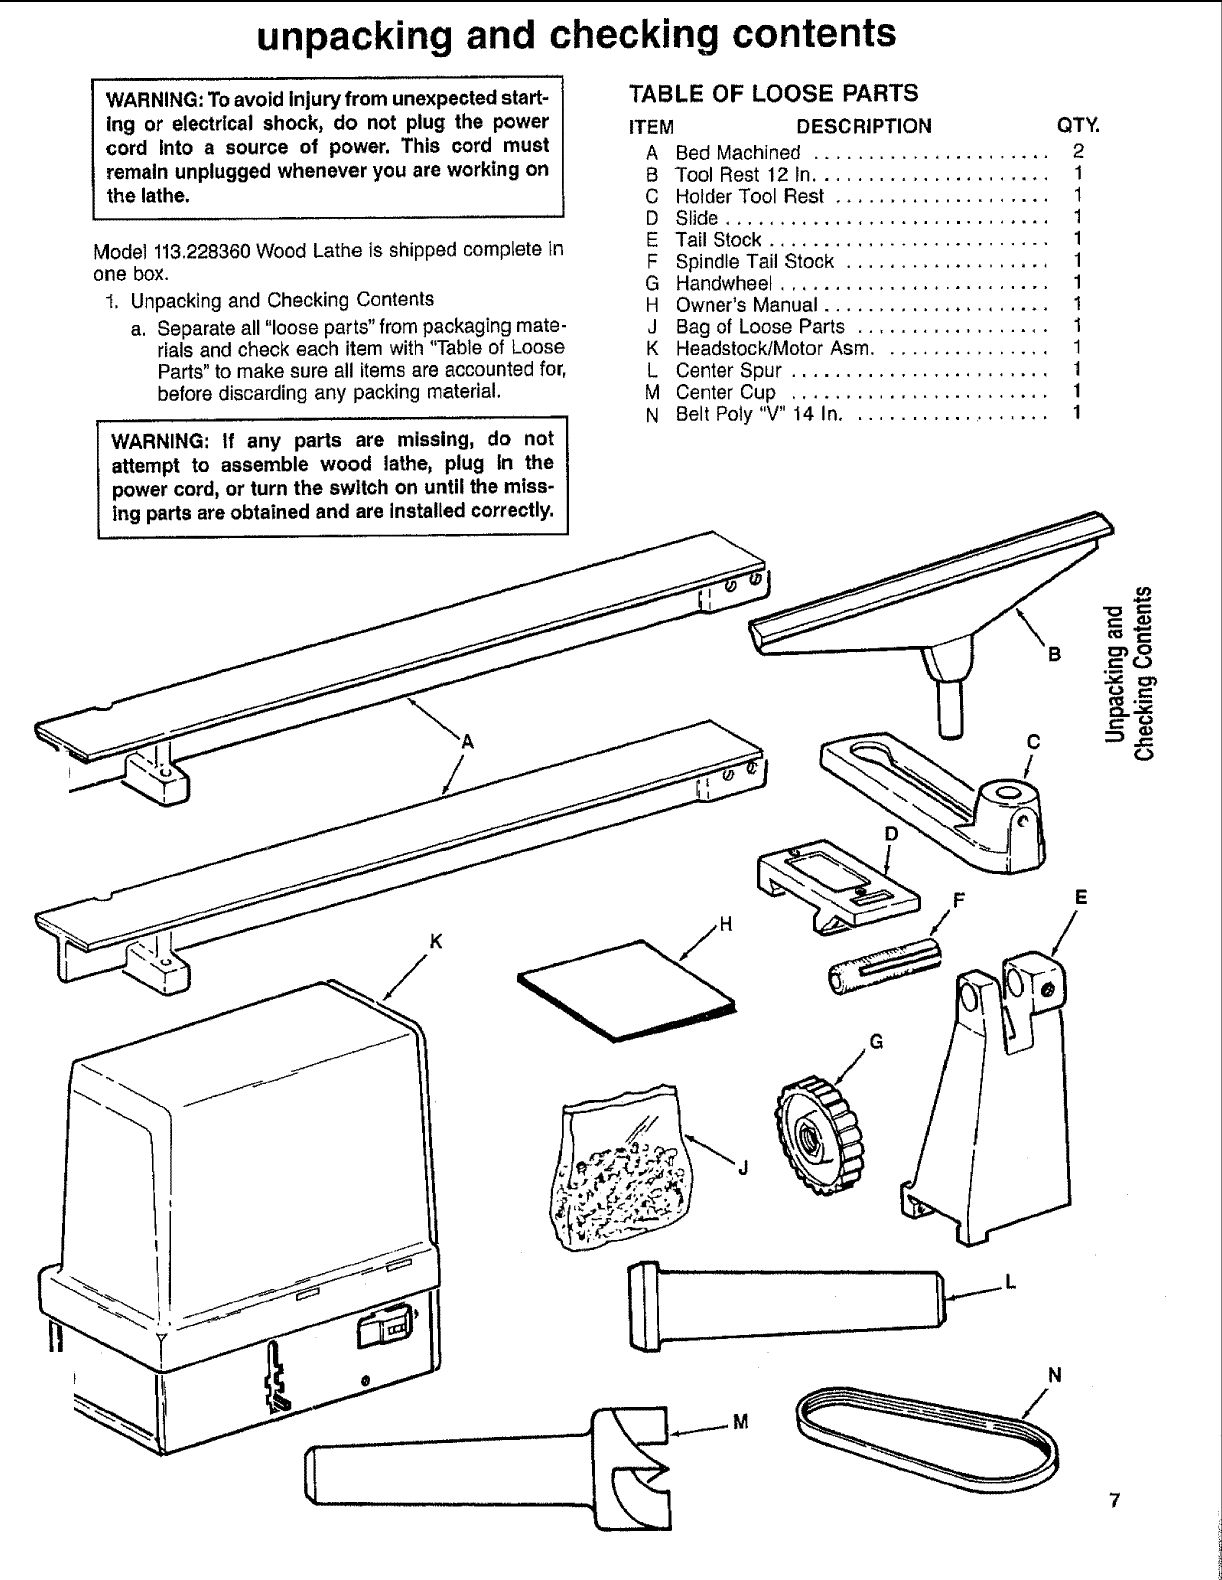 Craftsman 113228360 User Manual 12 Inch Wood Lathe Manuals And Engine Parts Diagram Guides L1001071